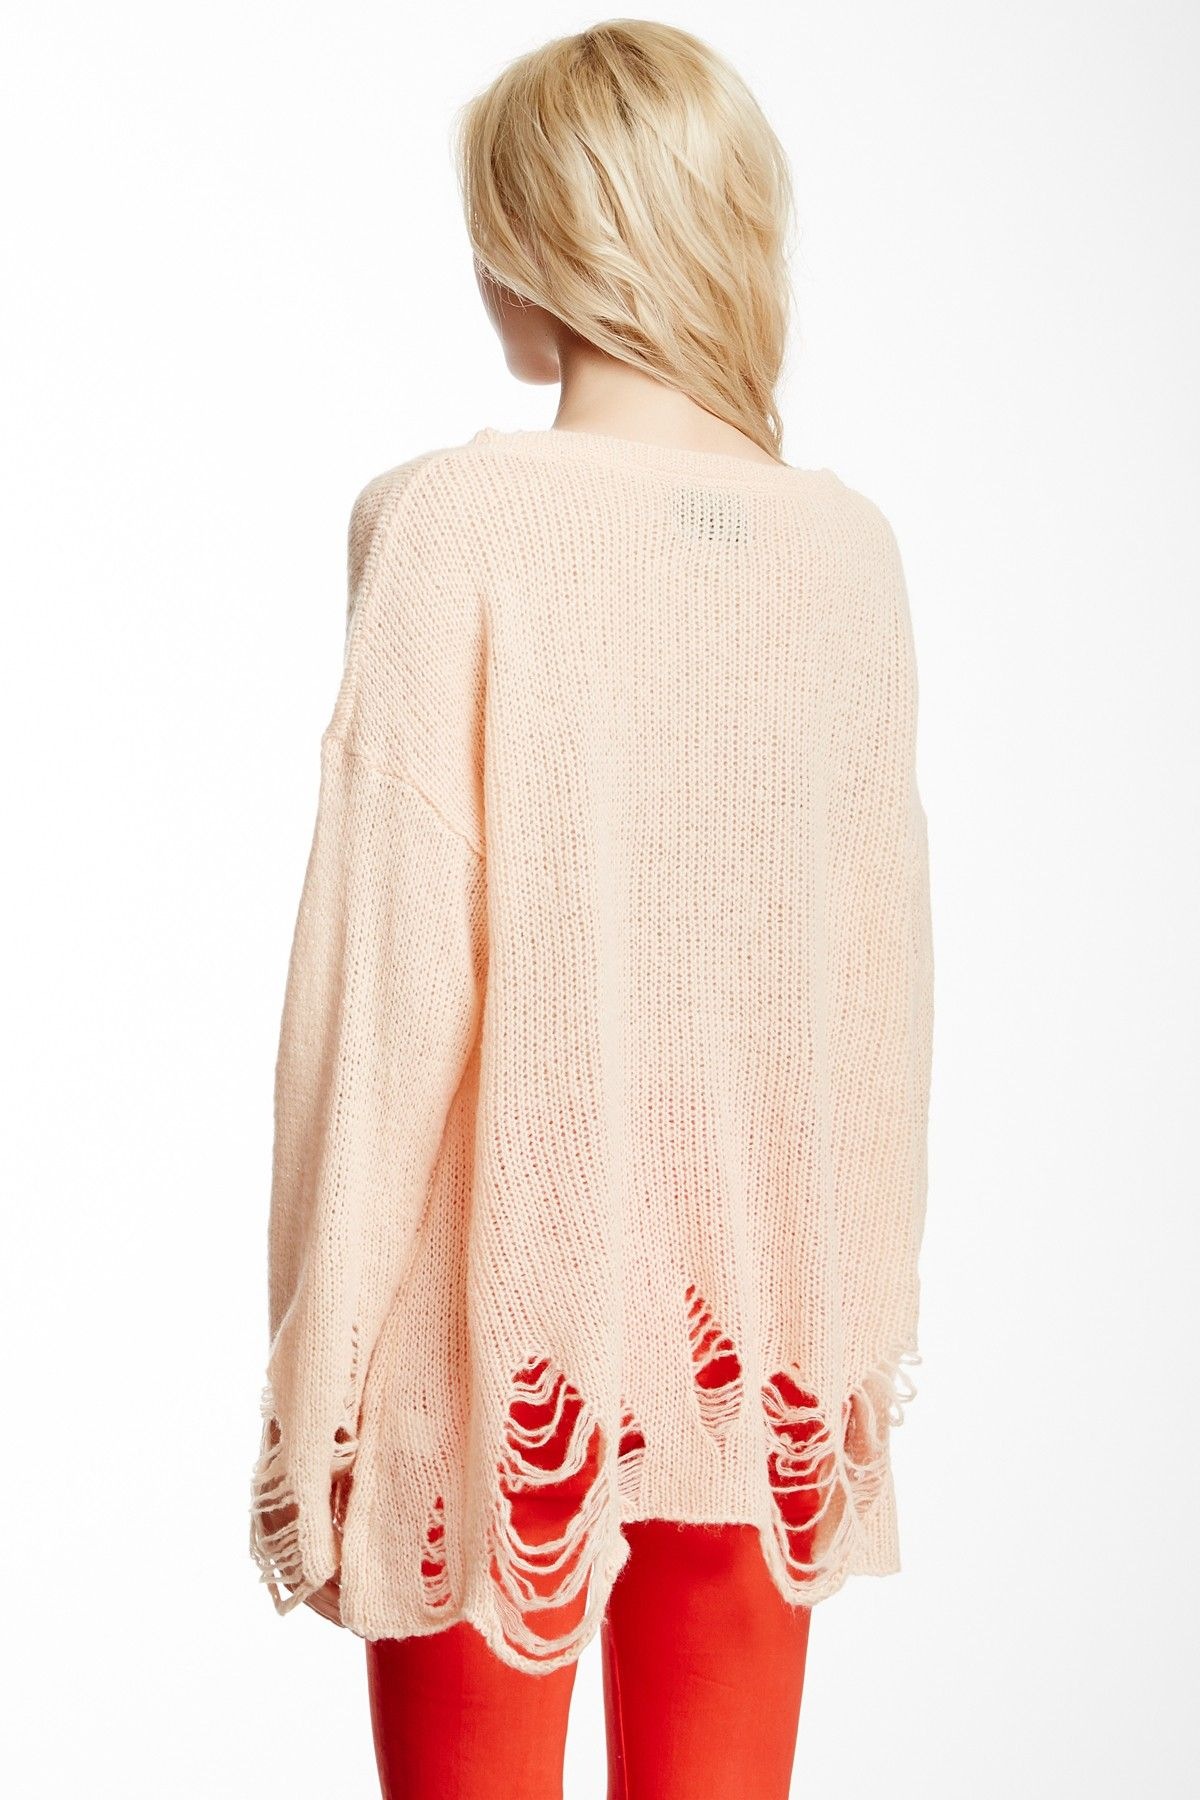 317ae8dd323 Distressed knit sweater - The Moment